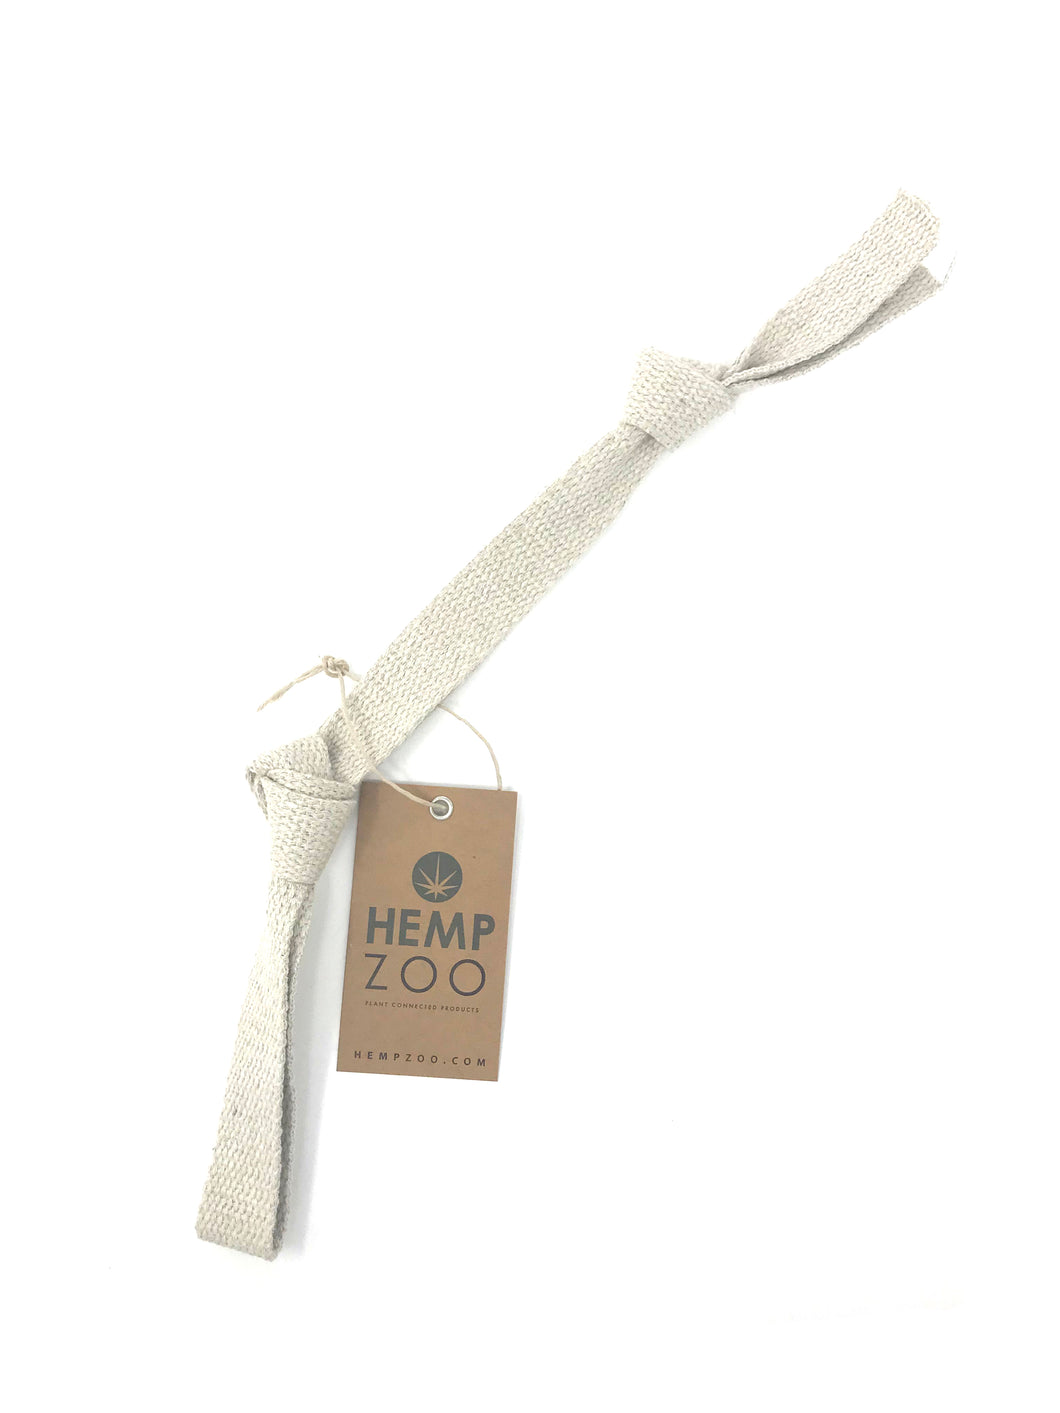 HEMP TUG STRAP MINI DOG TOY - HEMPZOO Sustainable organic hemp clothing hats accessories